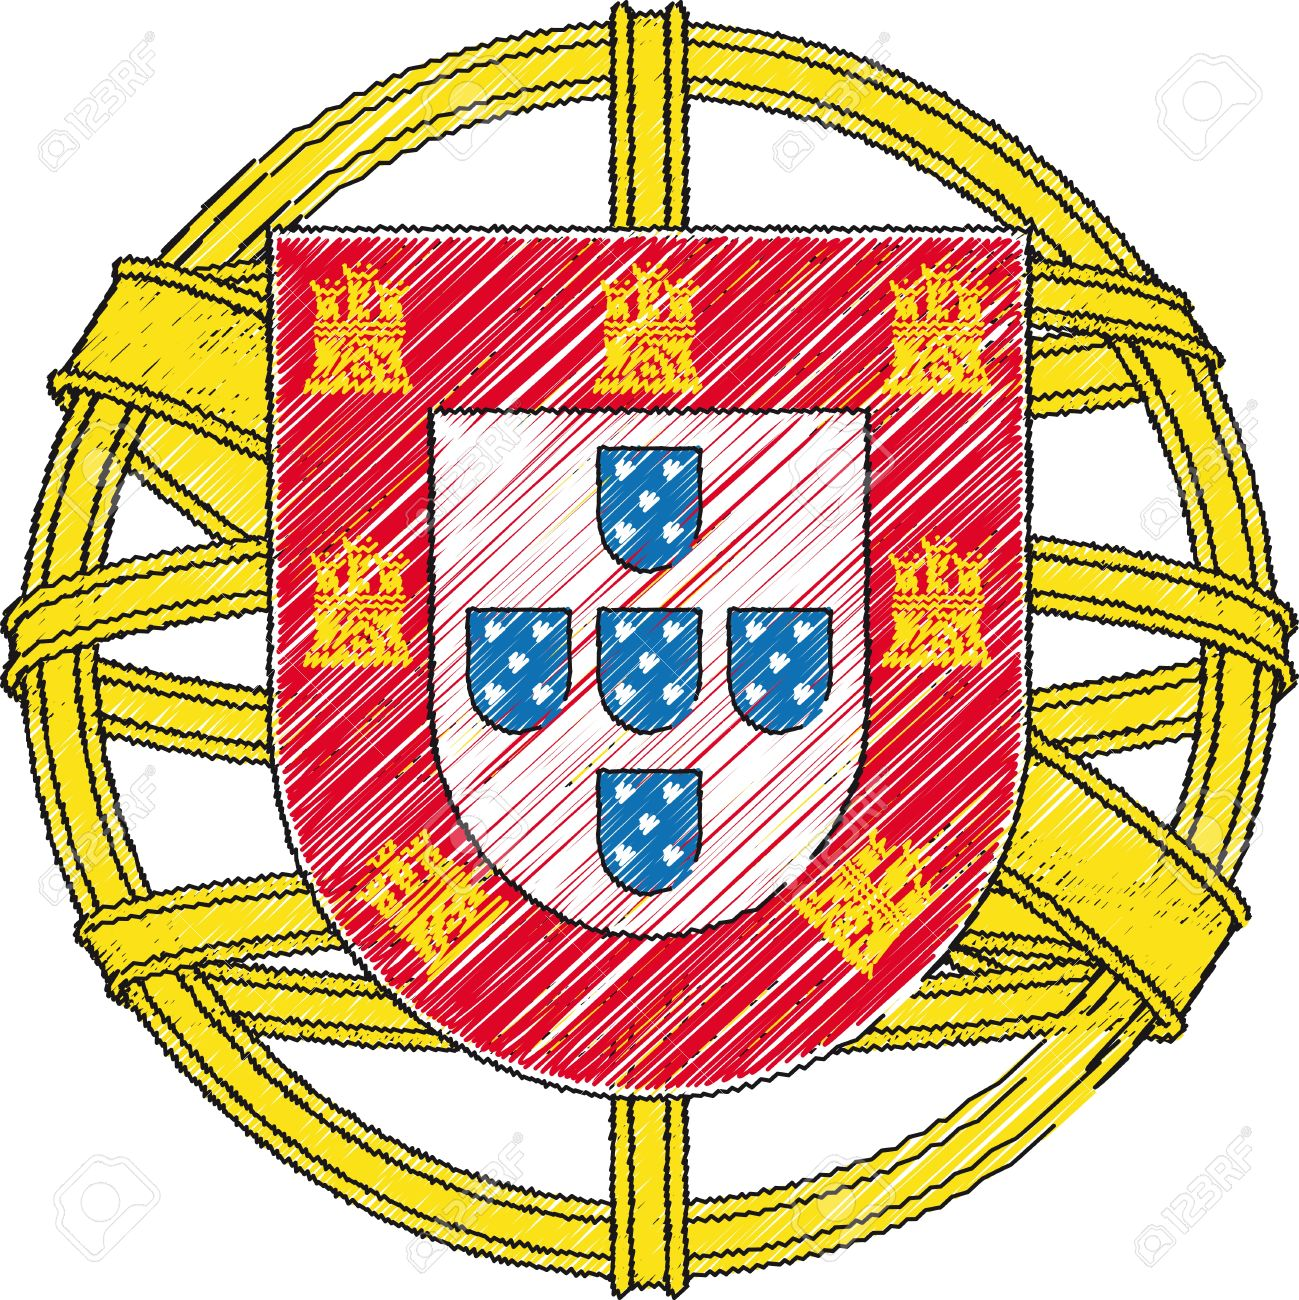 Coat Of Arms Portugal Vector Illustration Royalty Free Cliparts Vectors And Stock Illustration Image 10842286